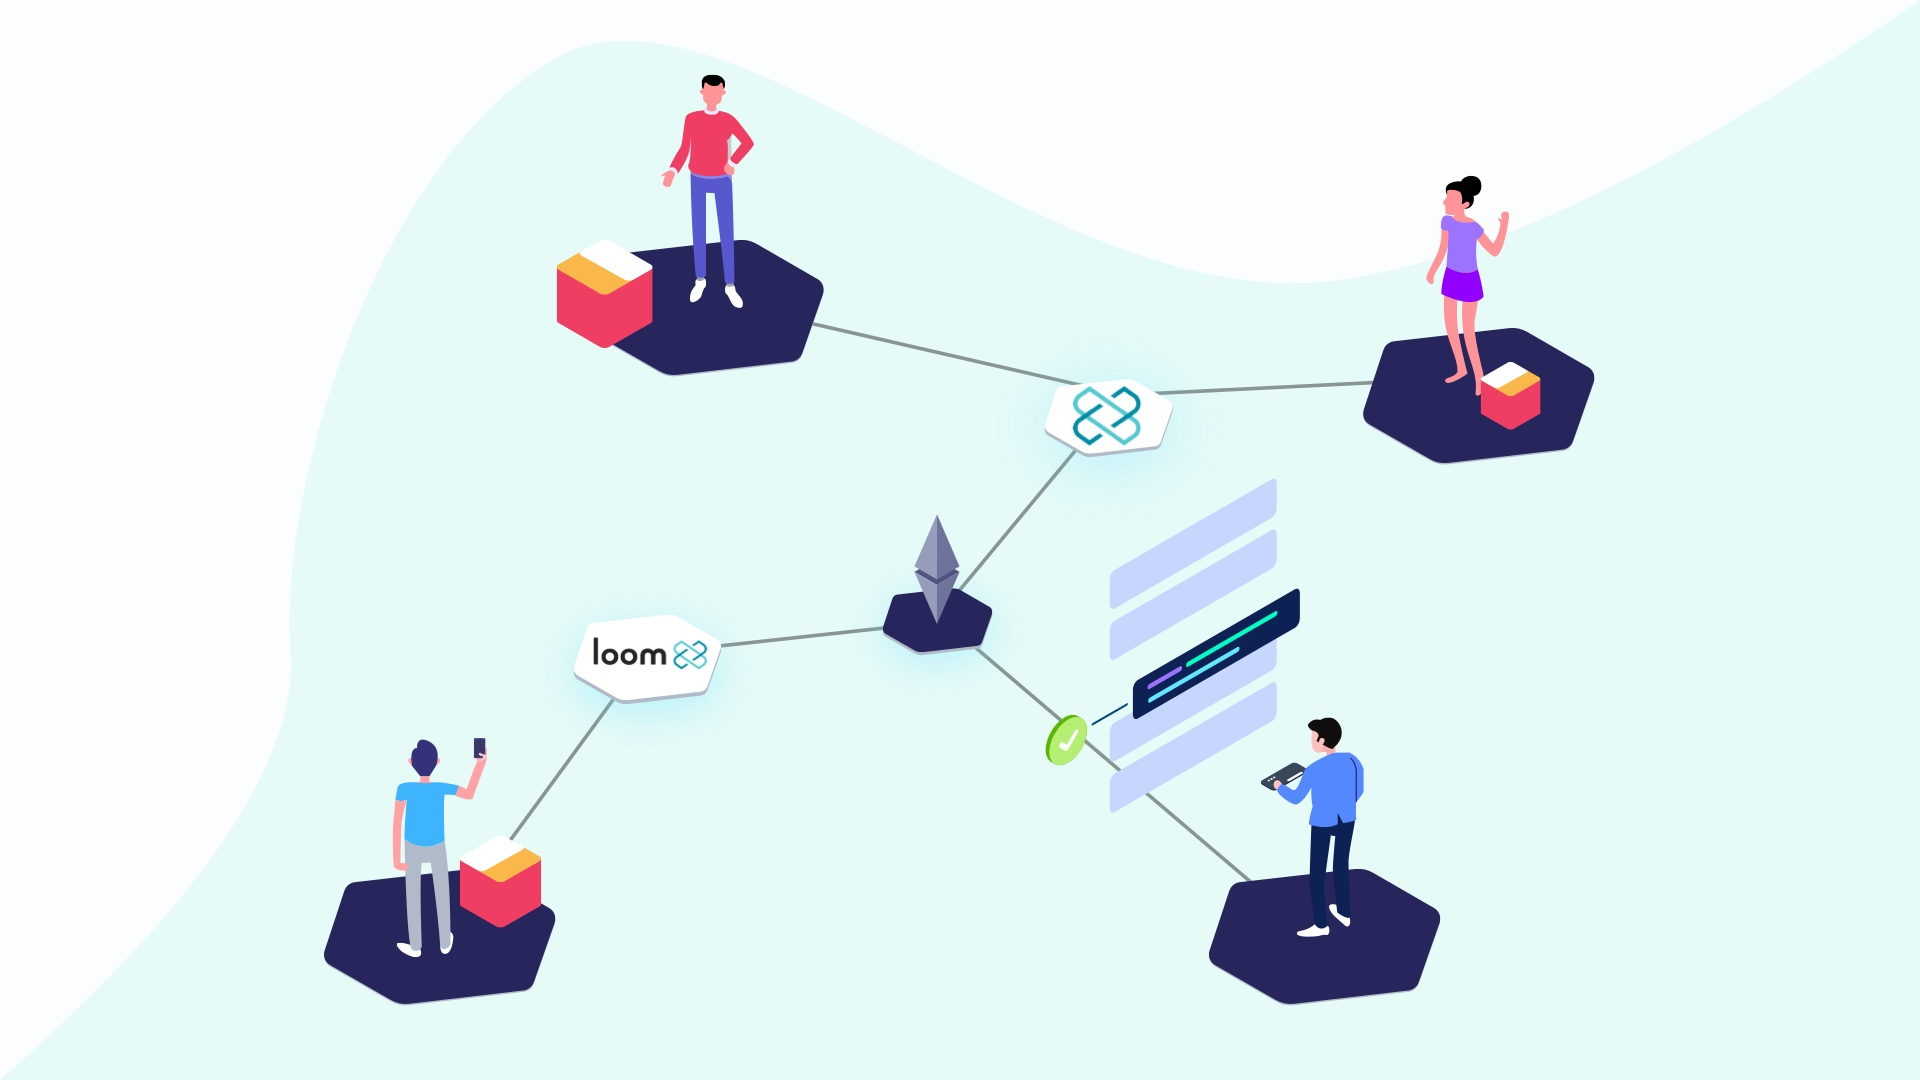 Deploy your first Smart Contract on Loom Network using Remix